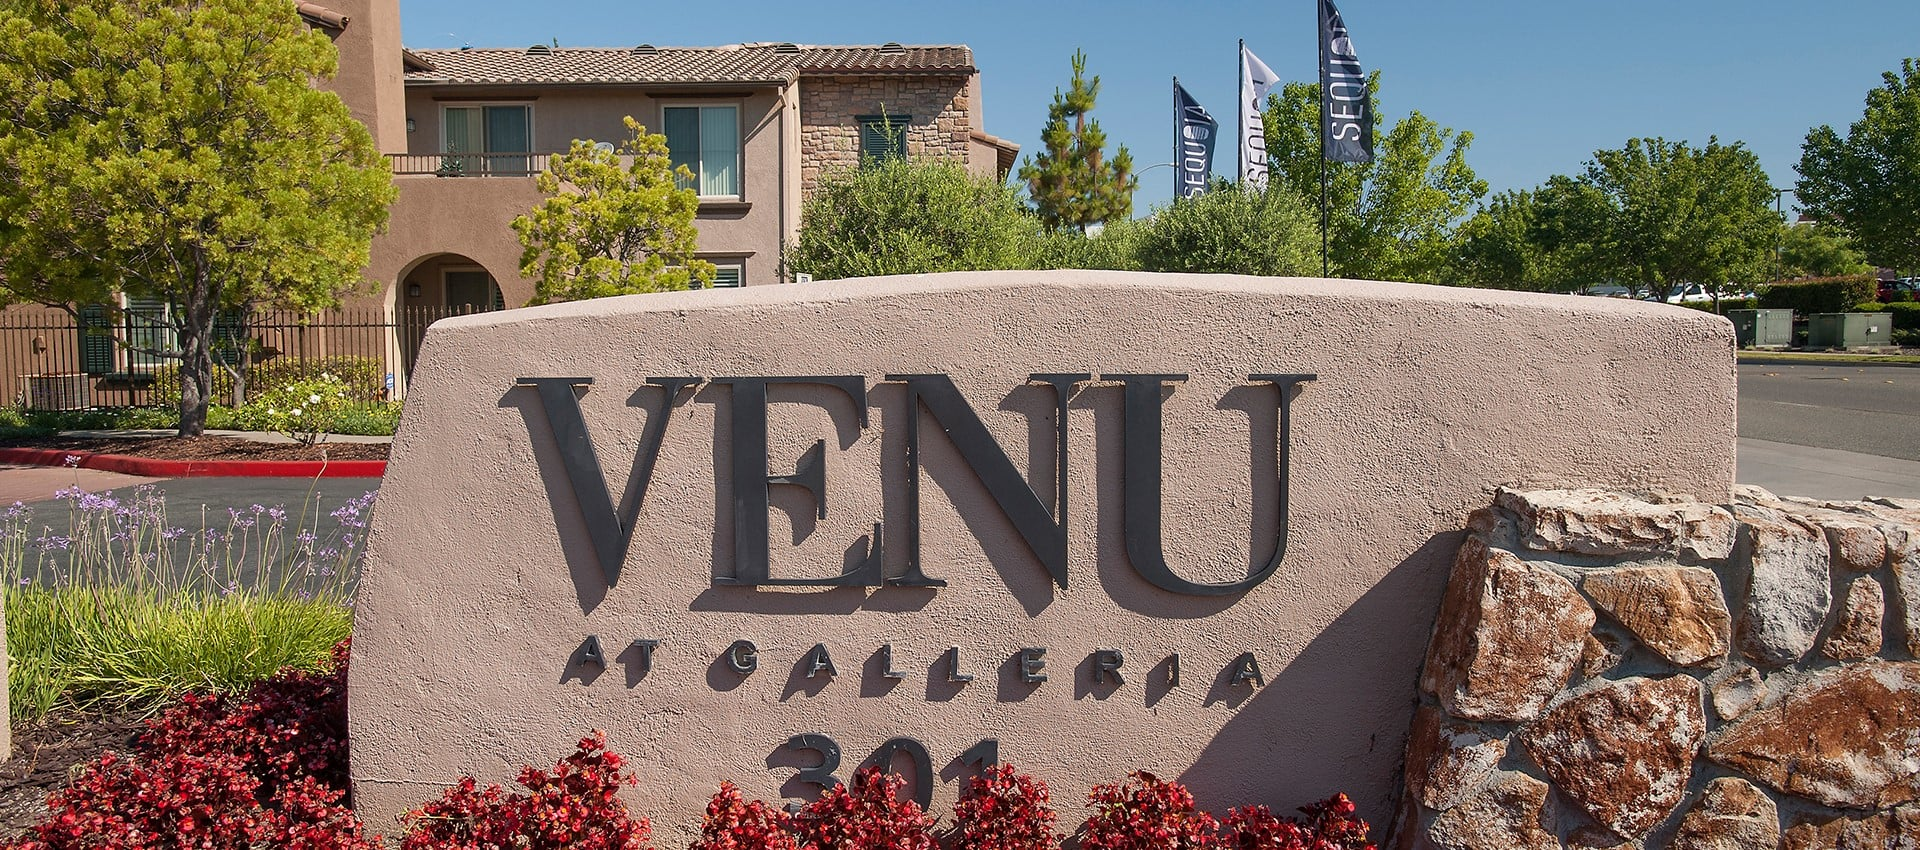 Contact Venu at Galleria Condominium Rentals in Roseville, California